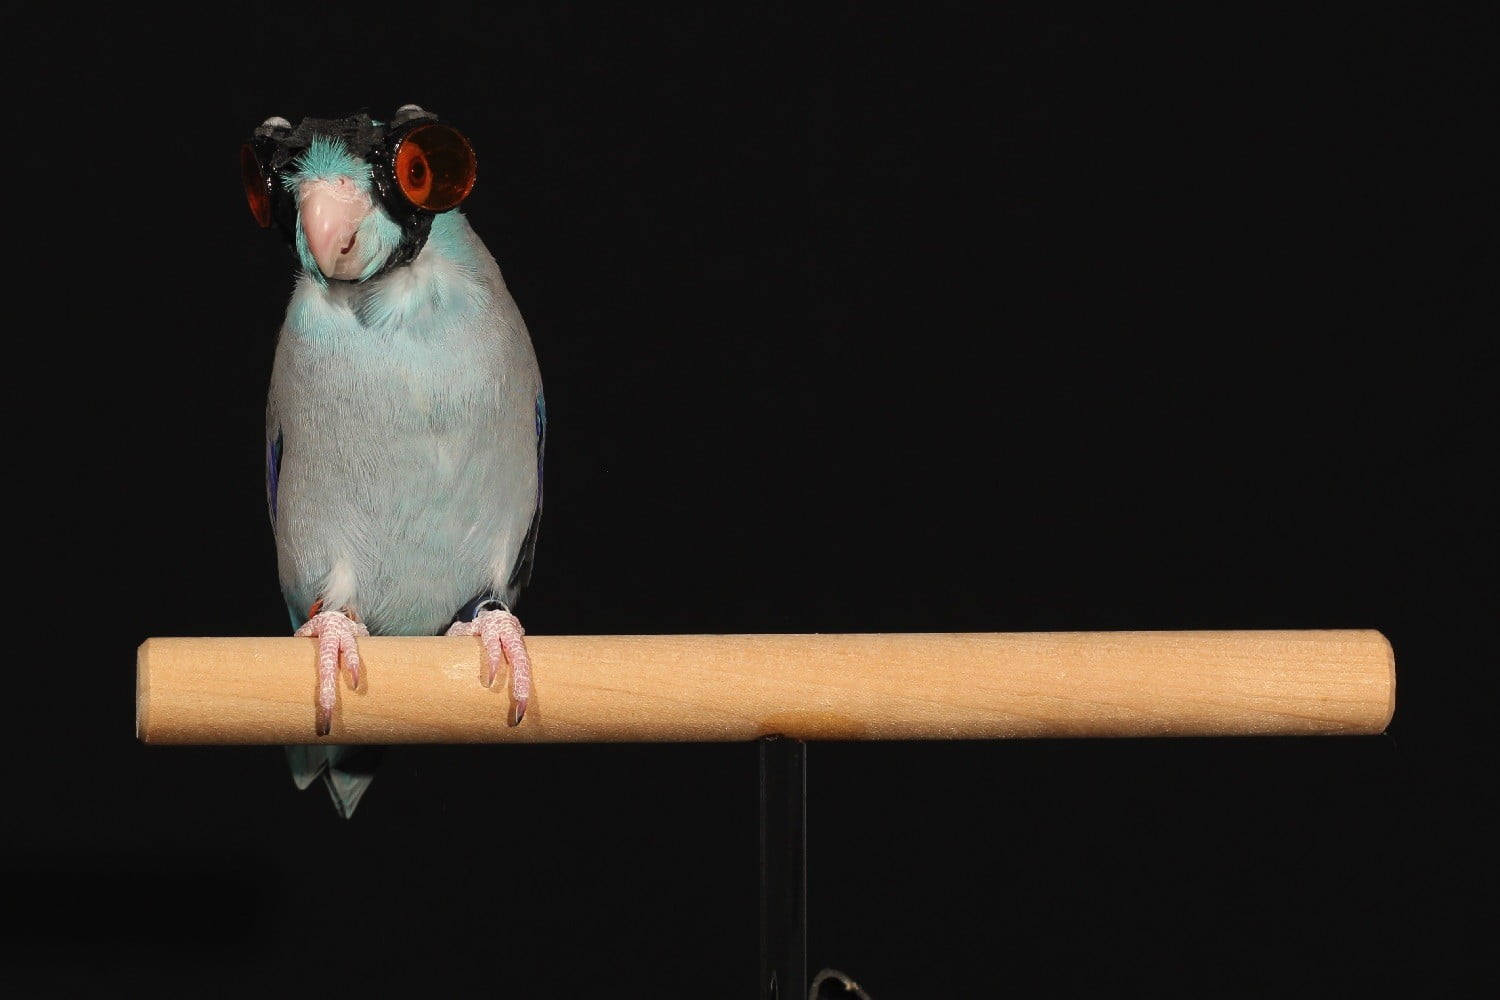 parrot goggles flying robots bird with laser img 9626 2